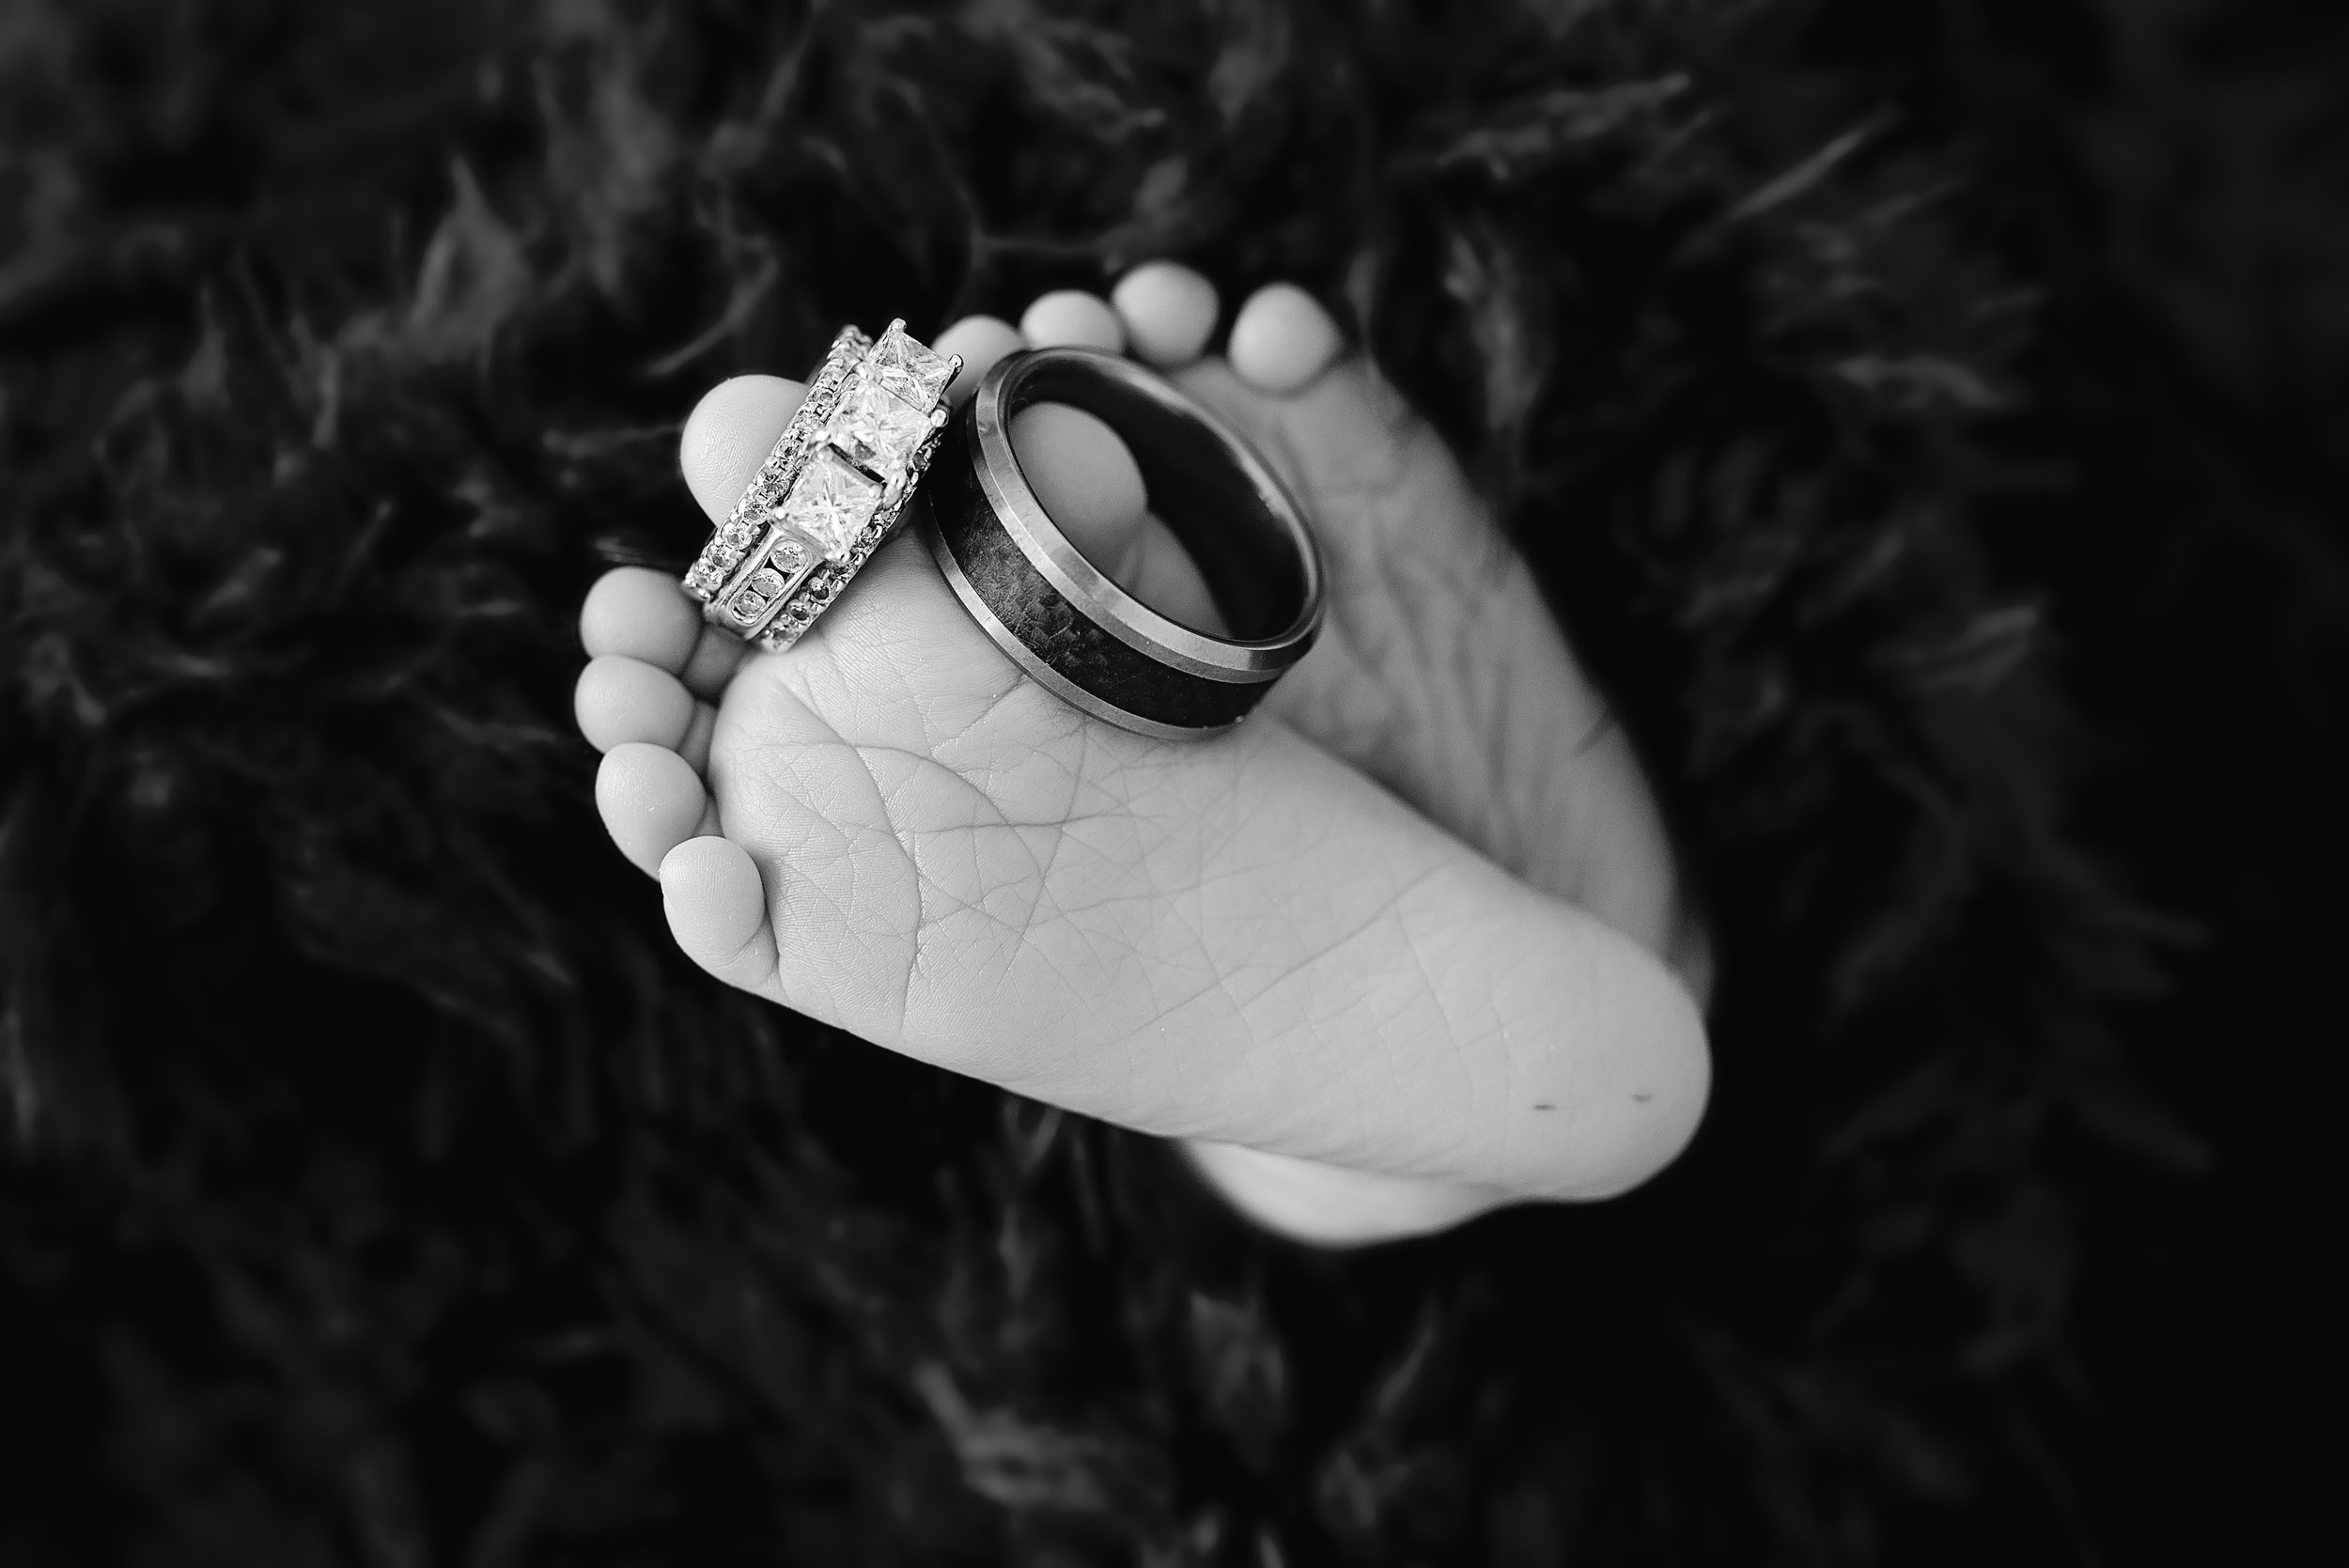 Baby toes holding wedding rings